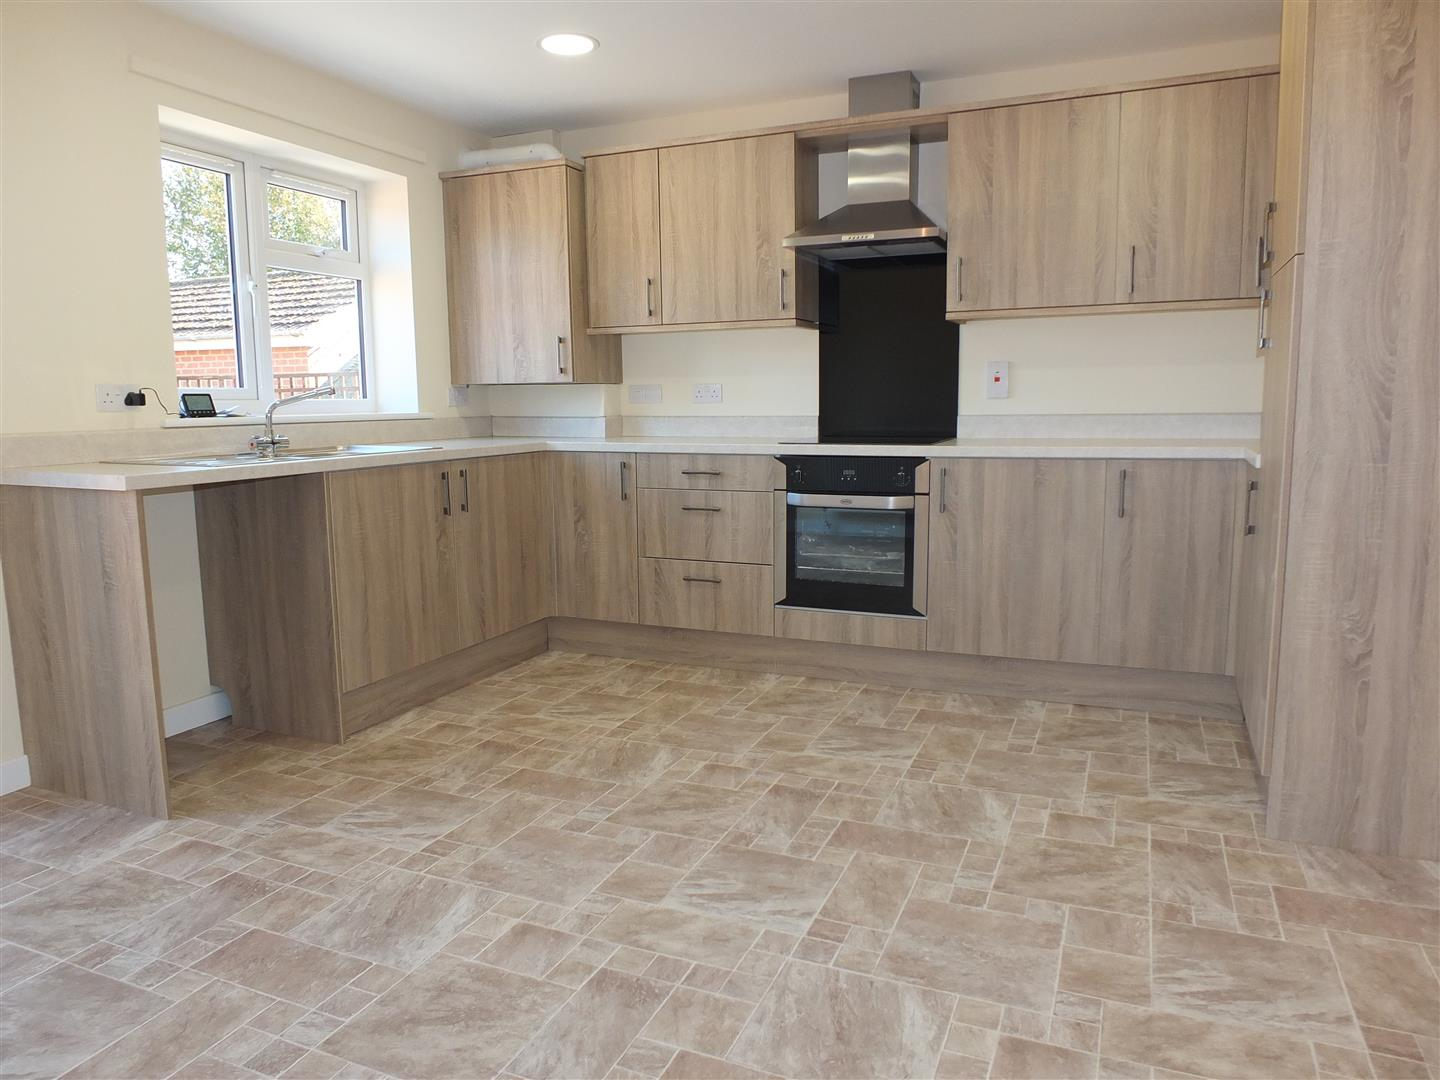 2 bed house to rent in Little London, Long Sutton Spalding 1